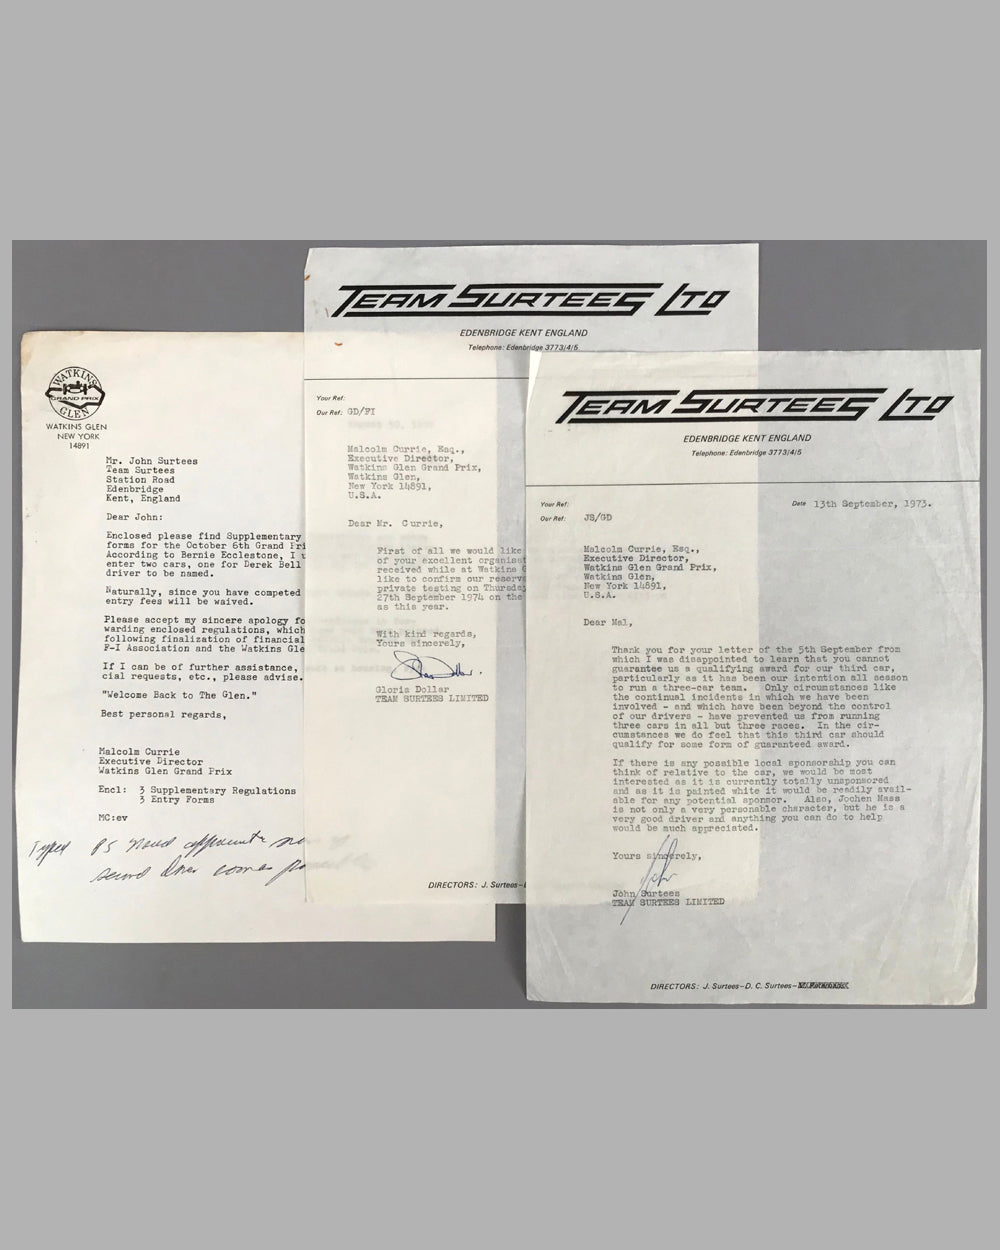 Three Team Surtees letters on company stationery between Malcom Currie at Watkins Glen